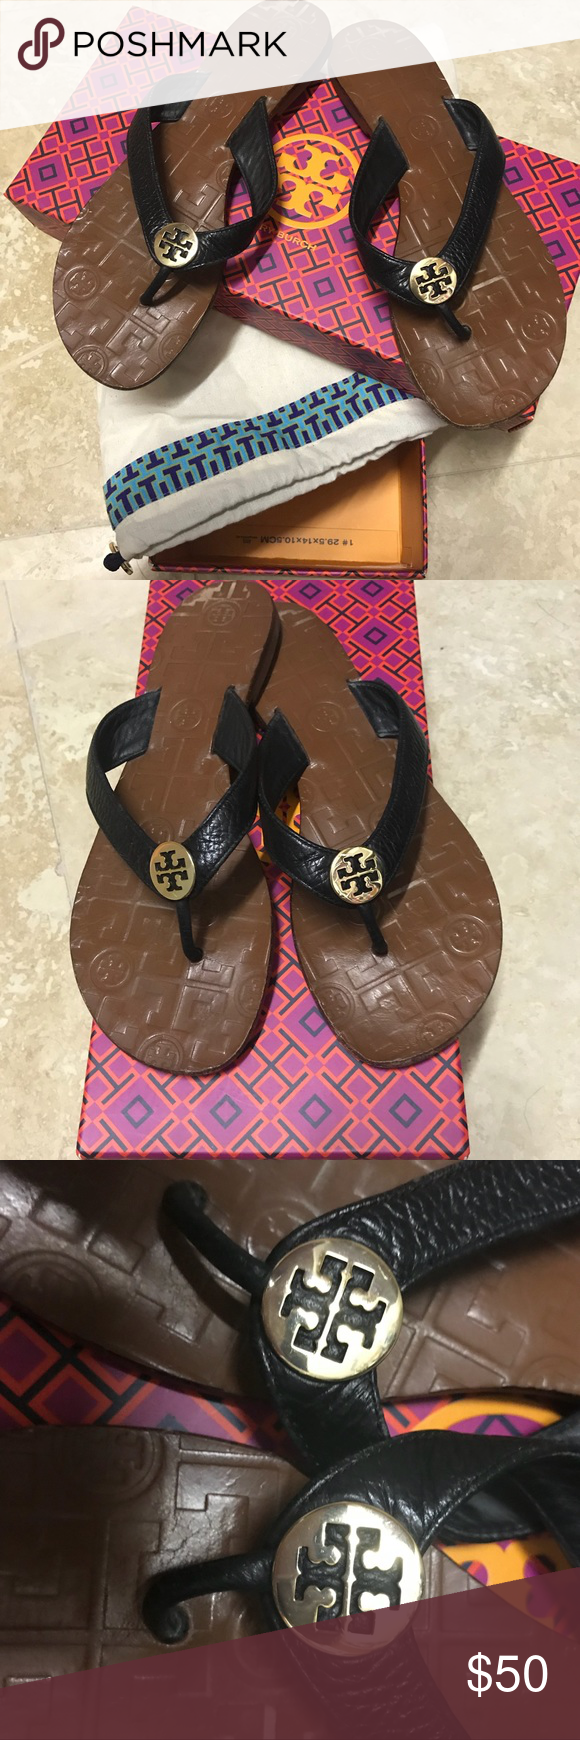 cc339adaf5cf9f Tory Burch Thora sandals Tory Burch